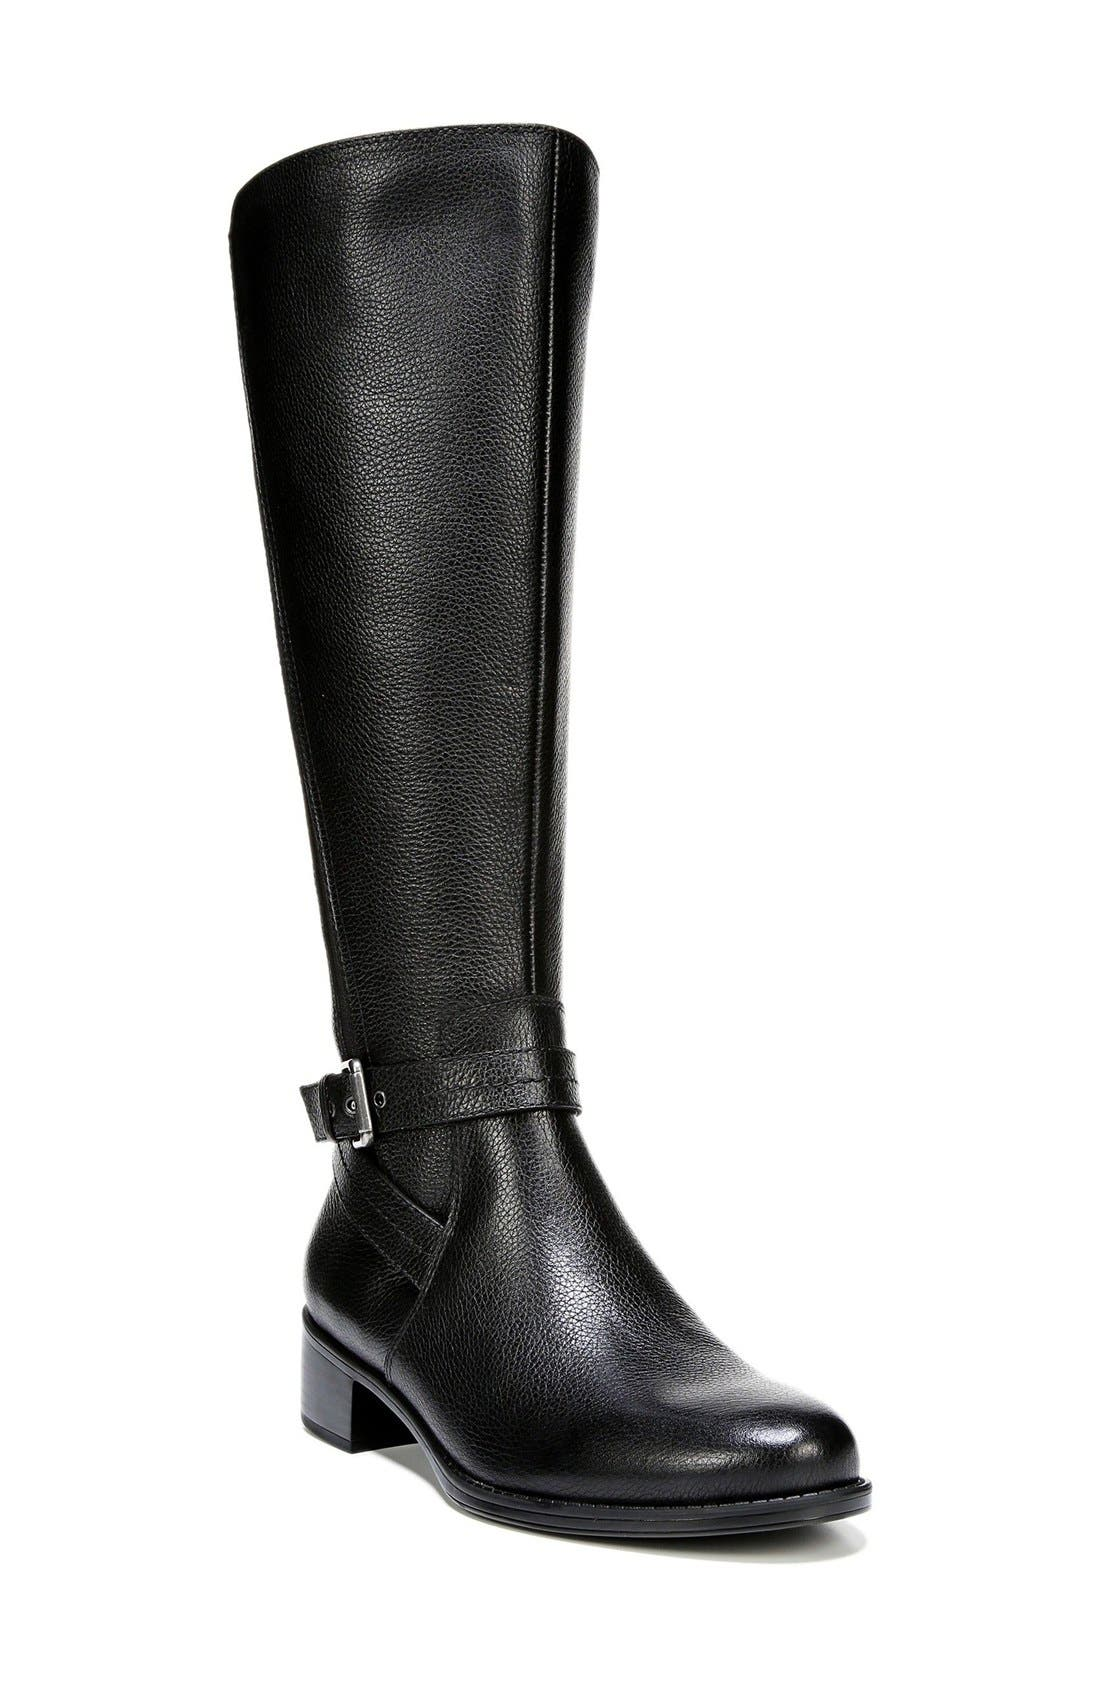 Main Image - Naturalizer 'Wynnie' Riding Boot (Women) (Wide Calf)